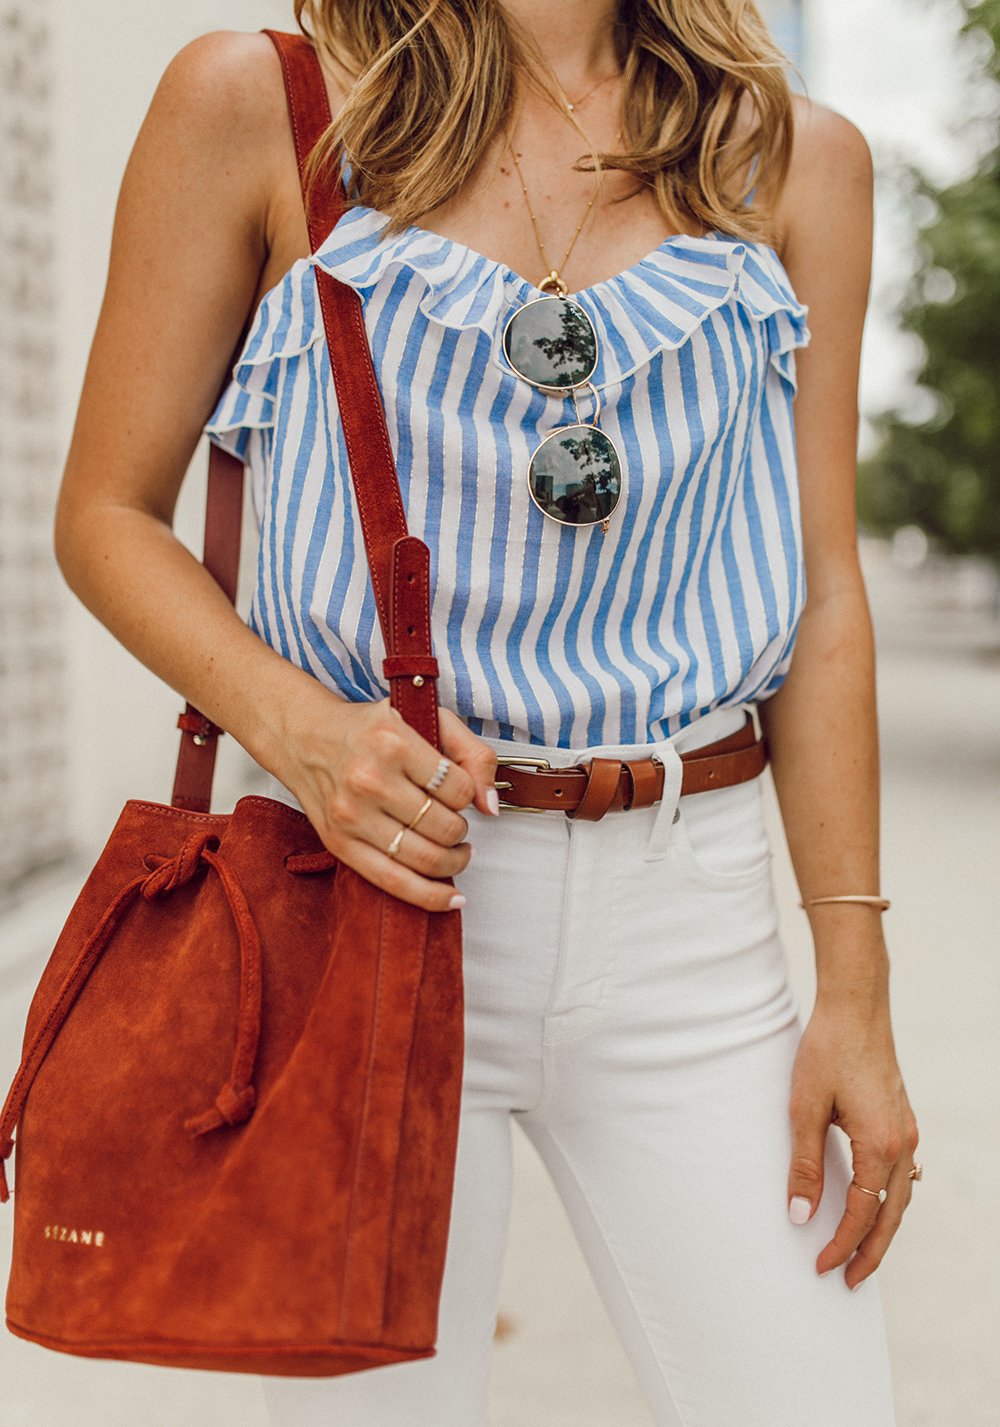 livvyland blog olivia watson austin texas fashion style blogger madewell white jeans sezane cyrille top 4th of july outfit idea 5 - Summer time Staple: White Denim